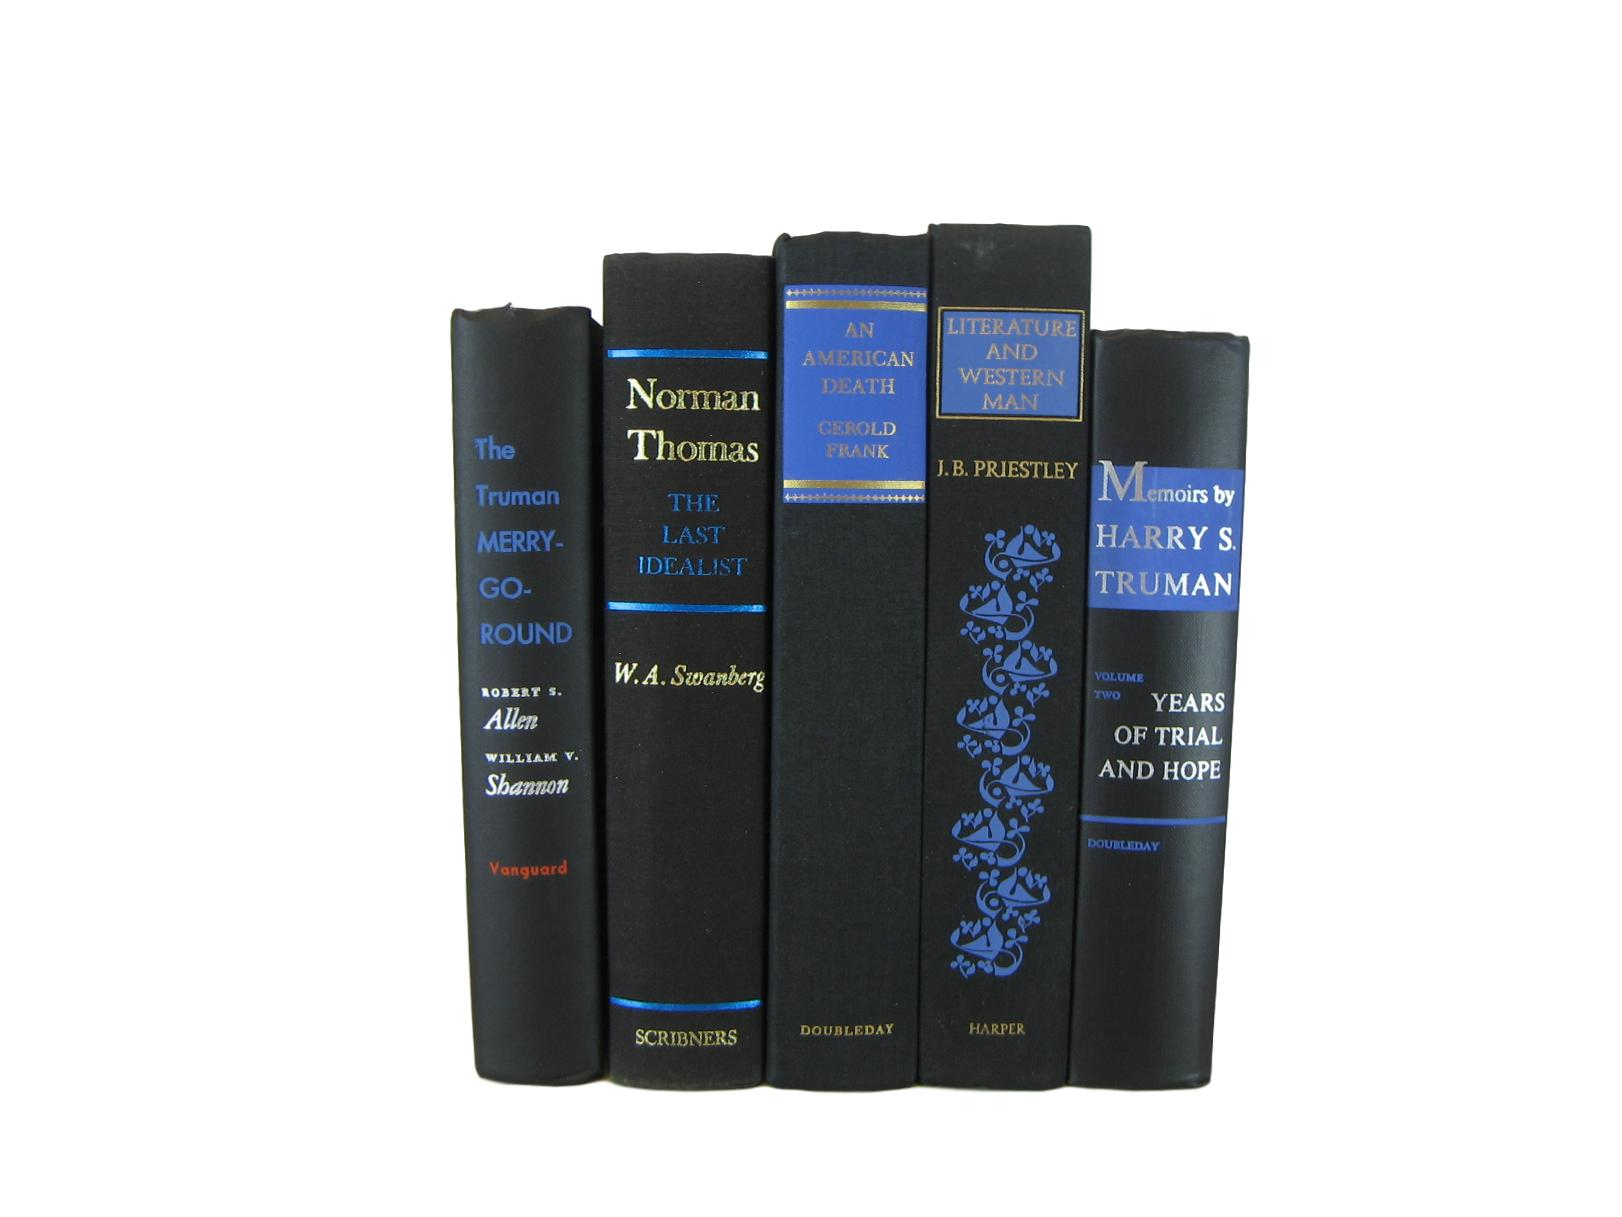 Black Vintage Books with Blue Embellishments for Decor, S/5